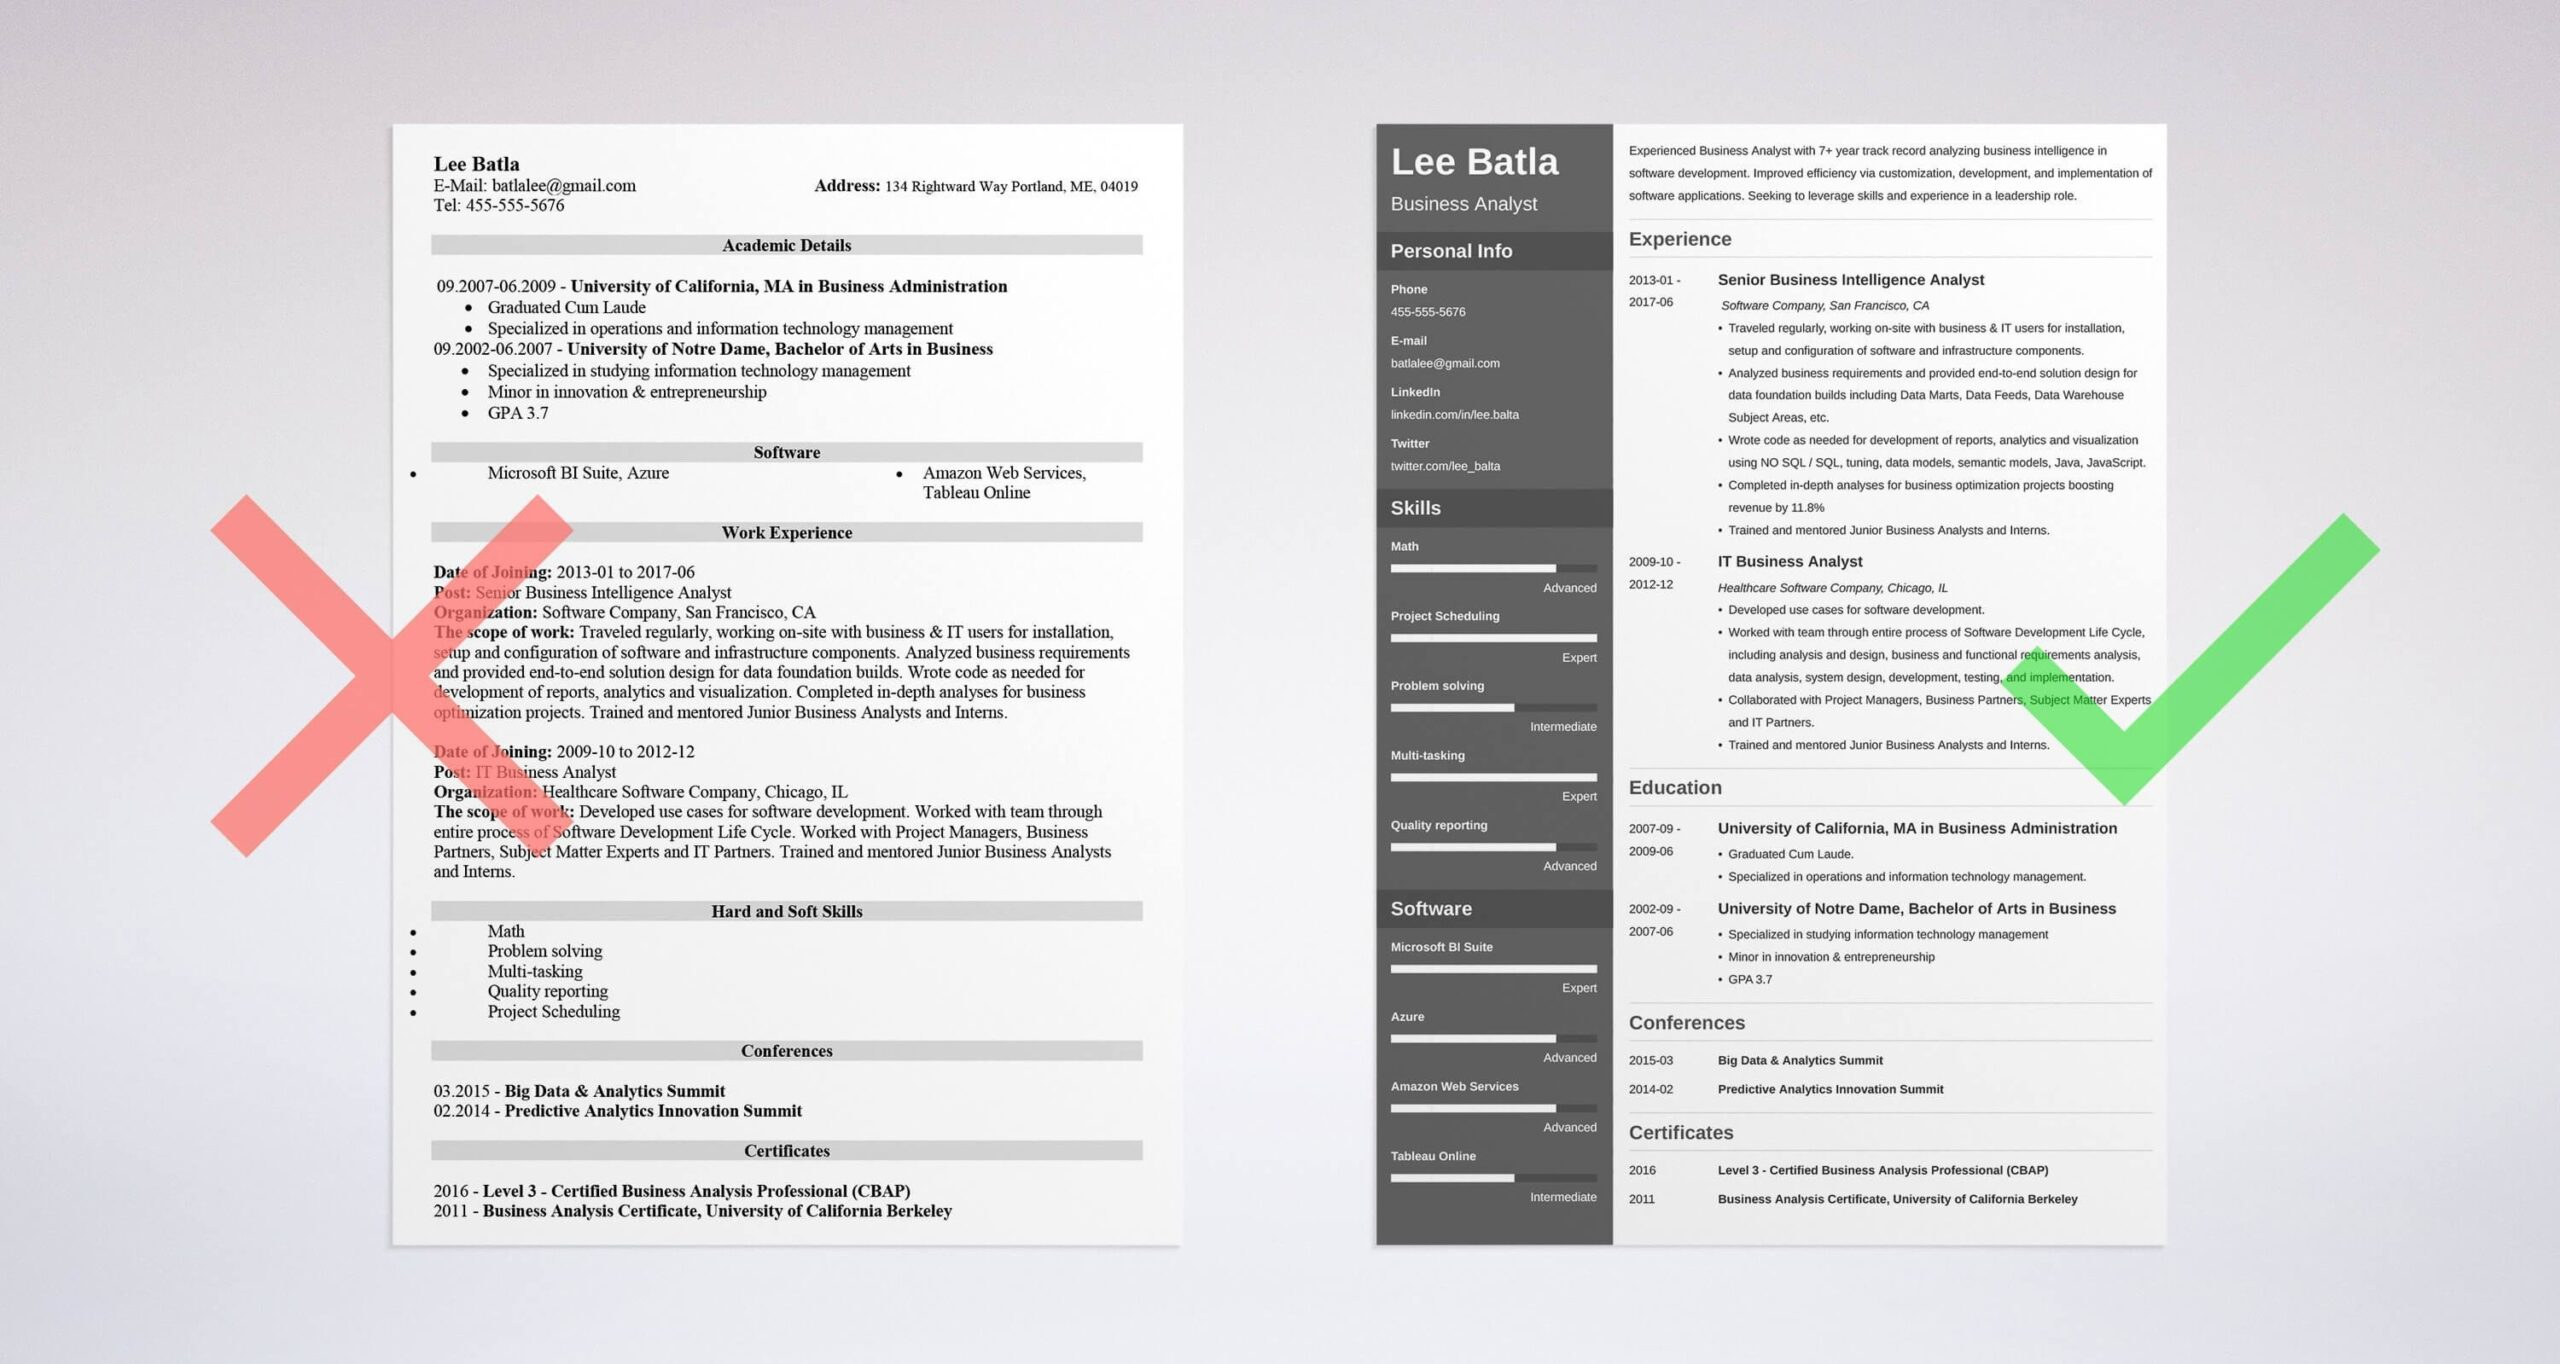 business analyst resume samples summary examples analytics profile email example material Resume Analytics Profile Resume